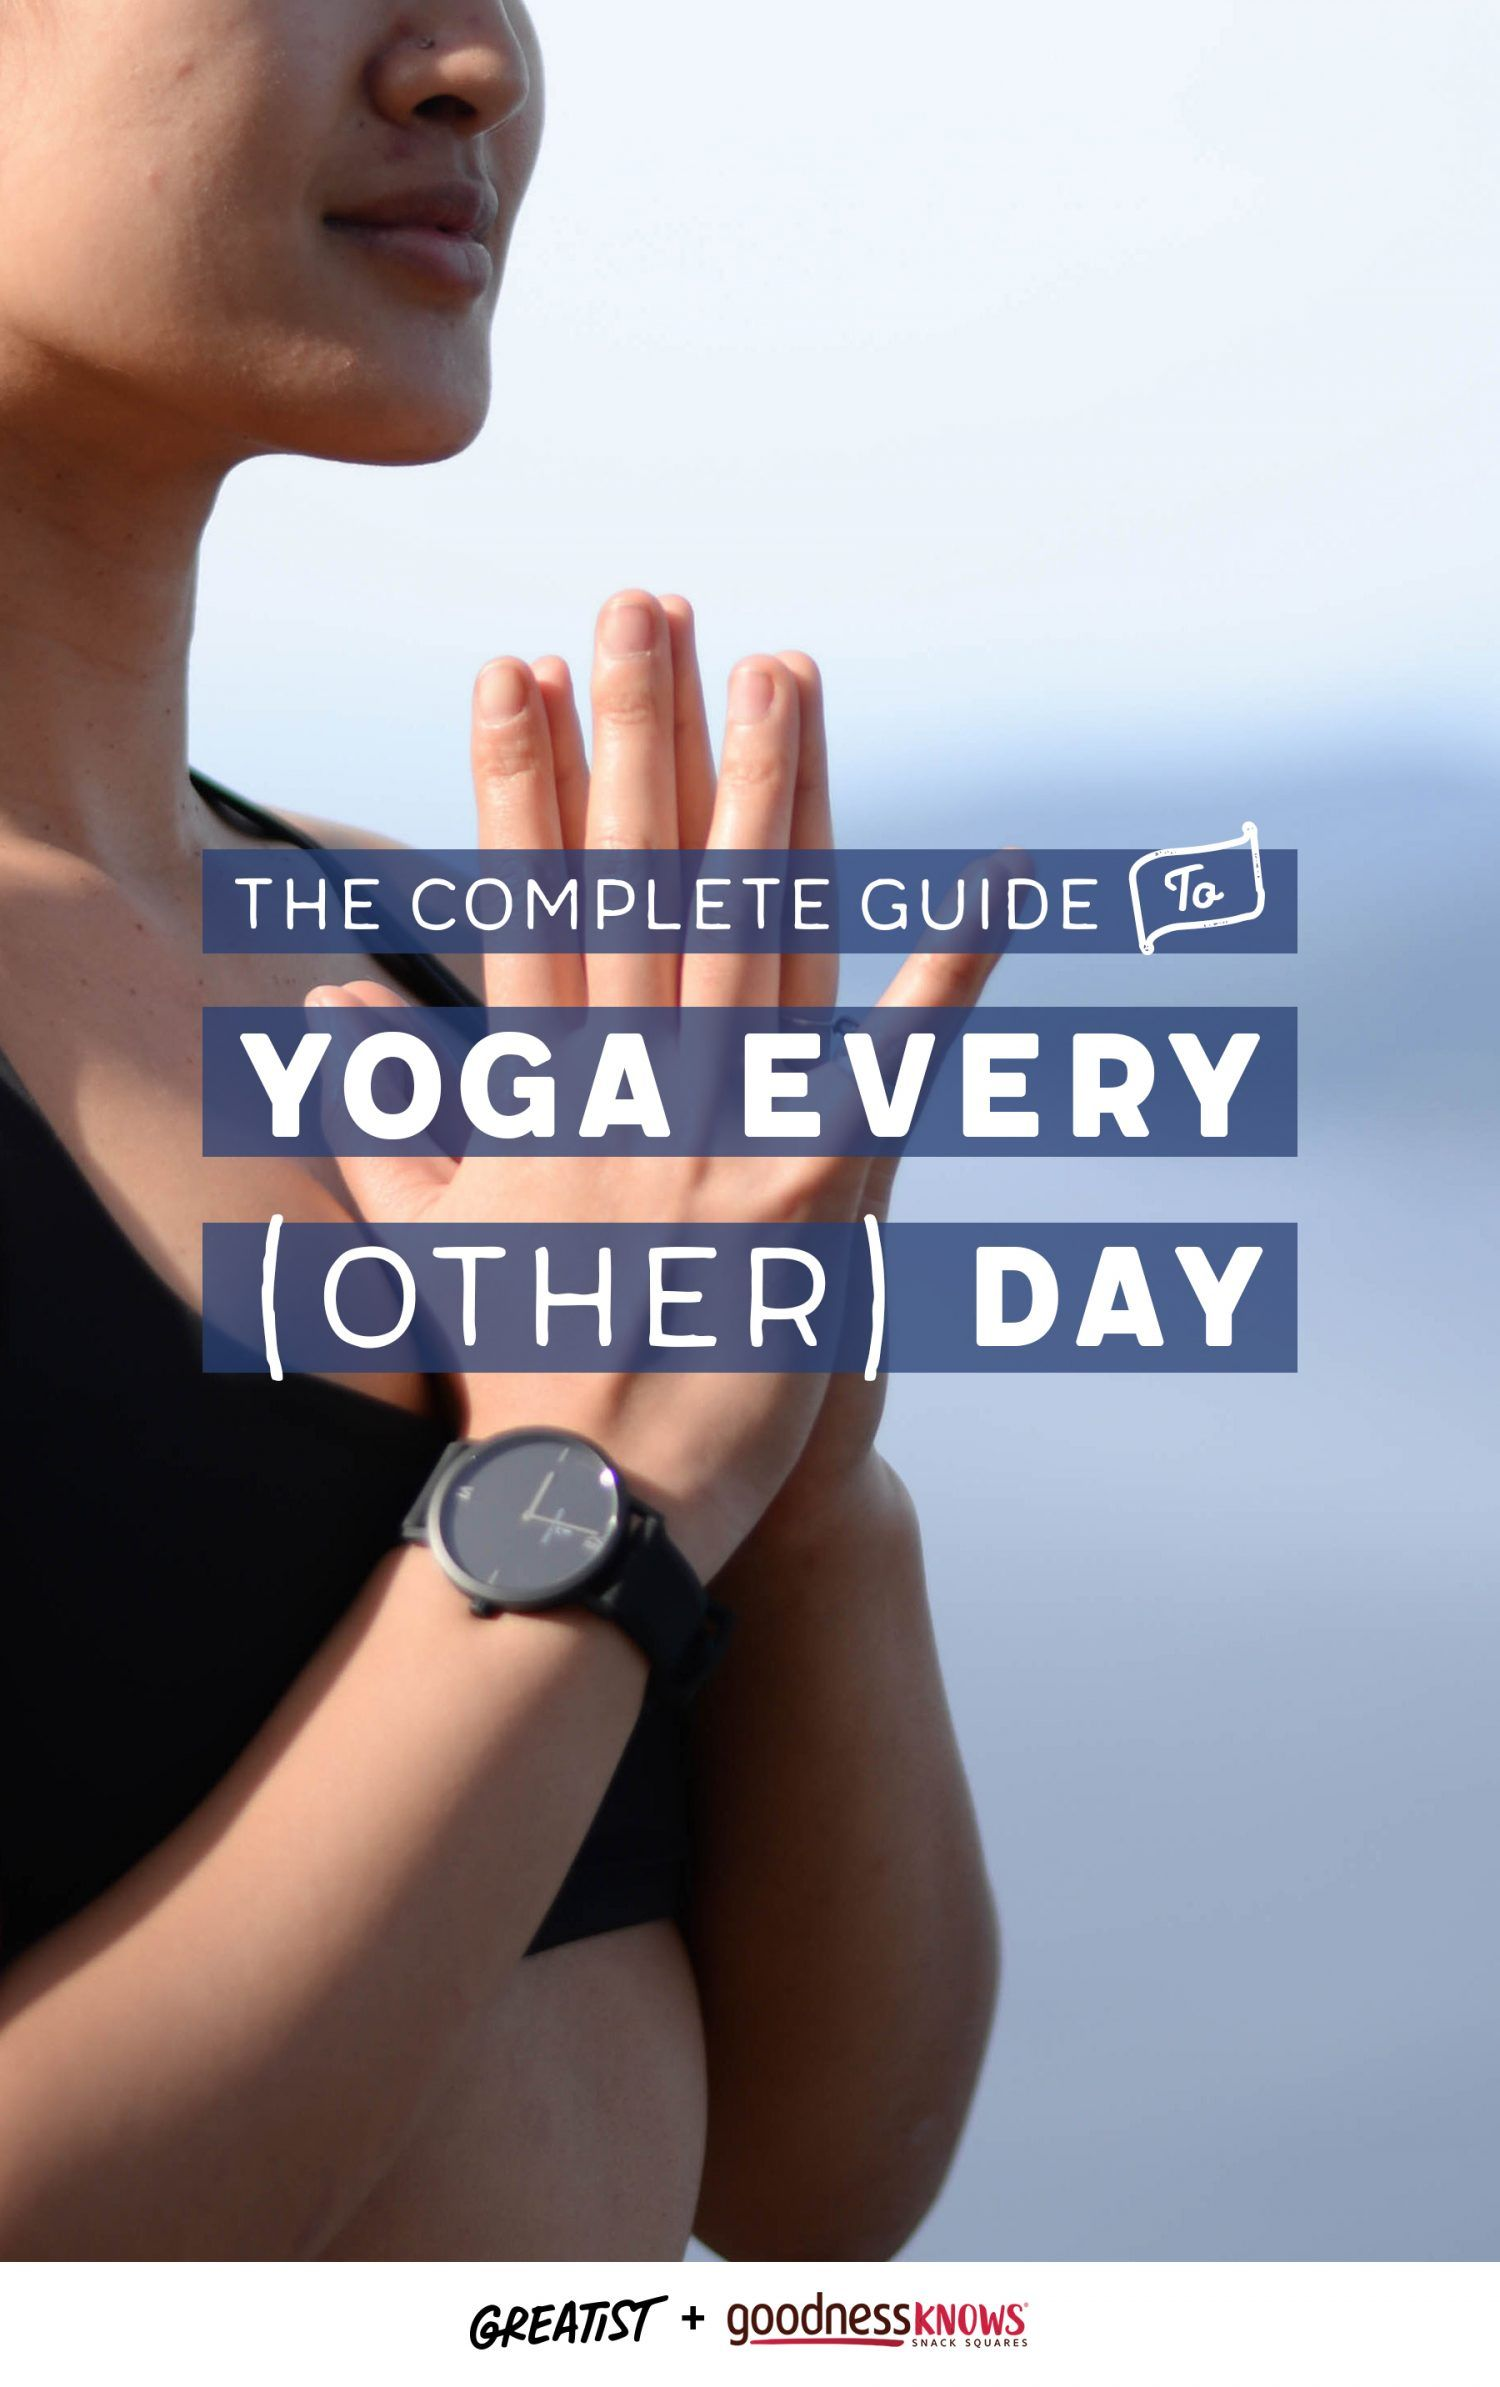 Let's be real: Yoga every other day is still a huge accomplishment.  #goodnessKNOWS #TryALittleGoodness #partner https://greatist.com/guide-to-yoga-every-other-day